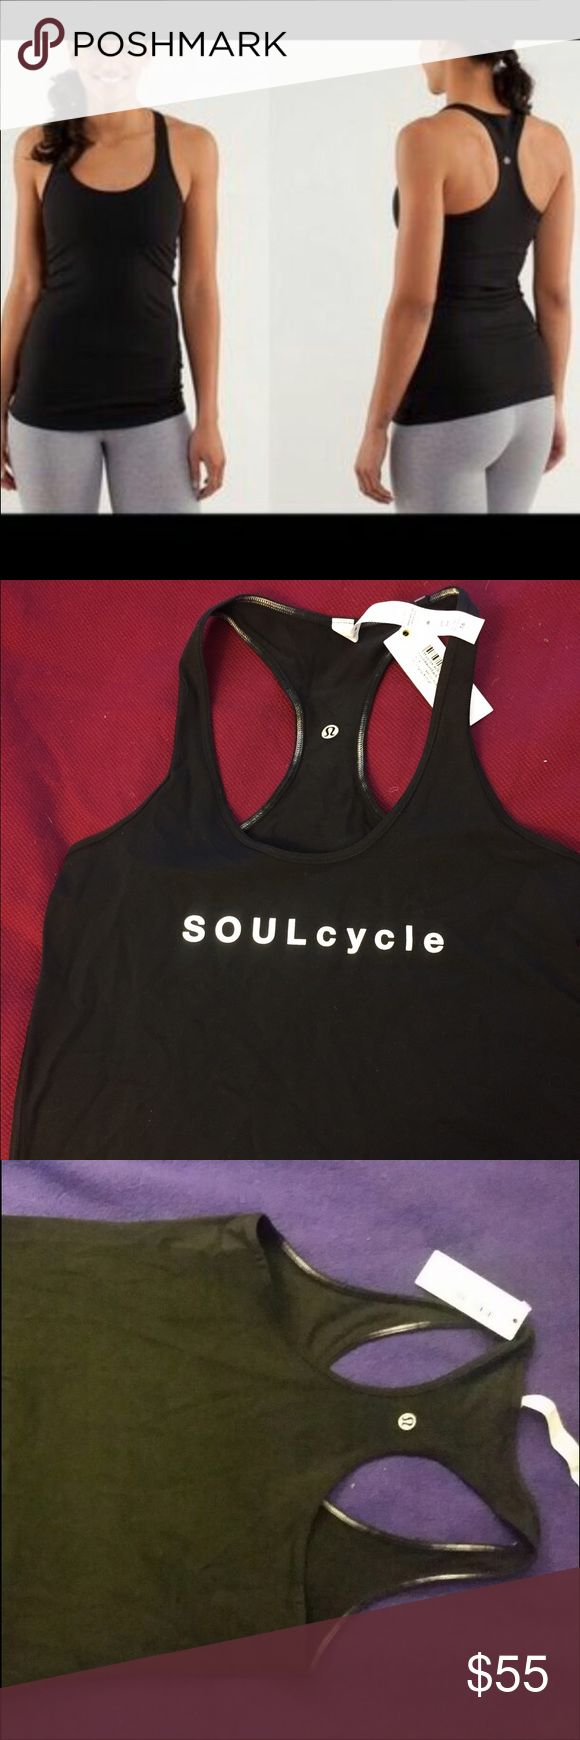 NWT Lululemon black tank CRB Reversible NWT brand new Lululemon soulcycle tank top, cool racerback, Says soulcycle in white, but it's reversible (lulu logo on both sides) so it's all black on the reserve side with hombre stitching (see photo) Size 8, original price $66 lululemon athletica Tops Tank Tops